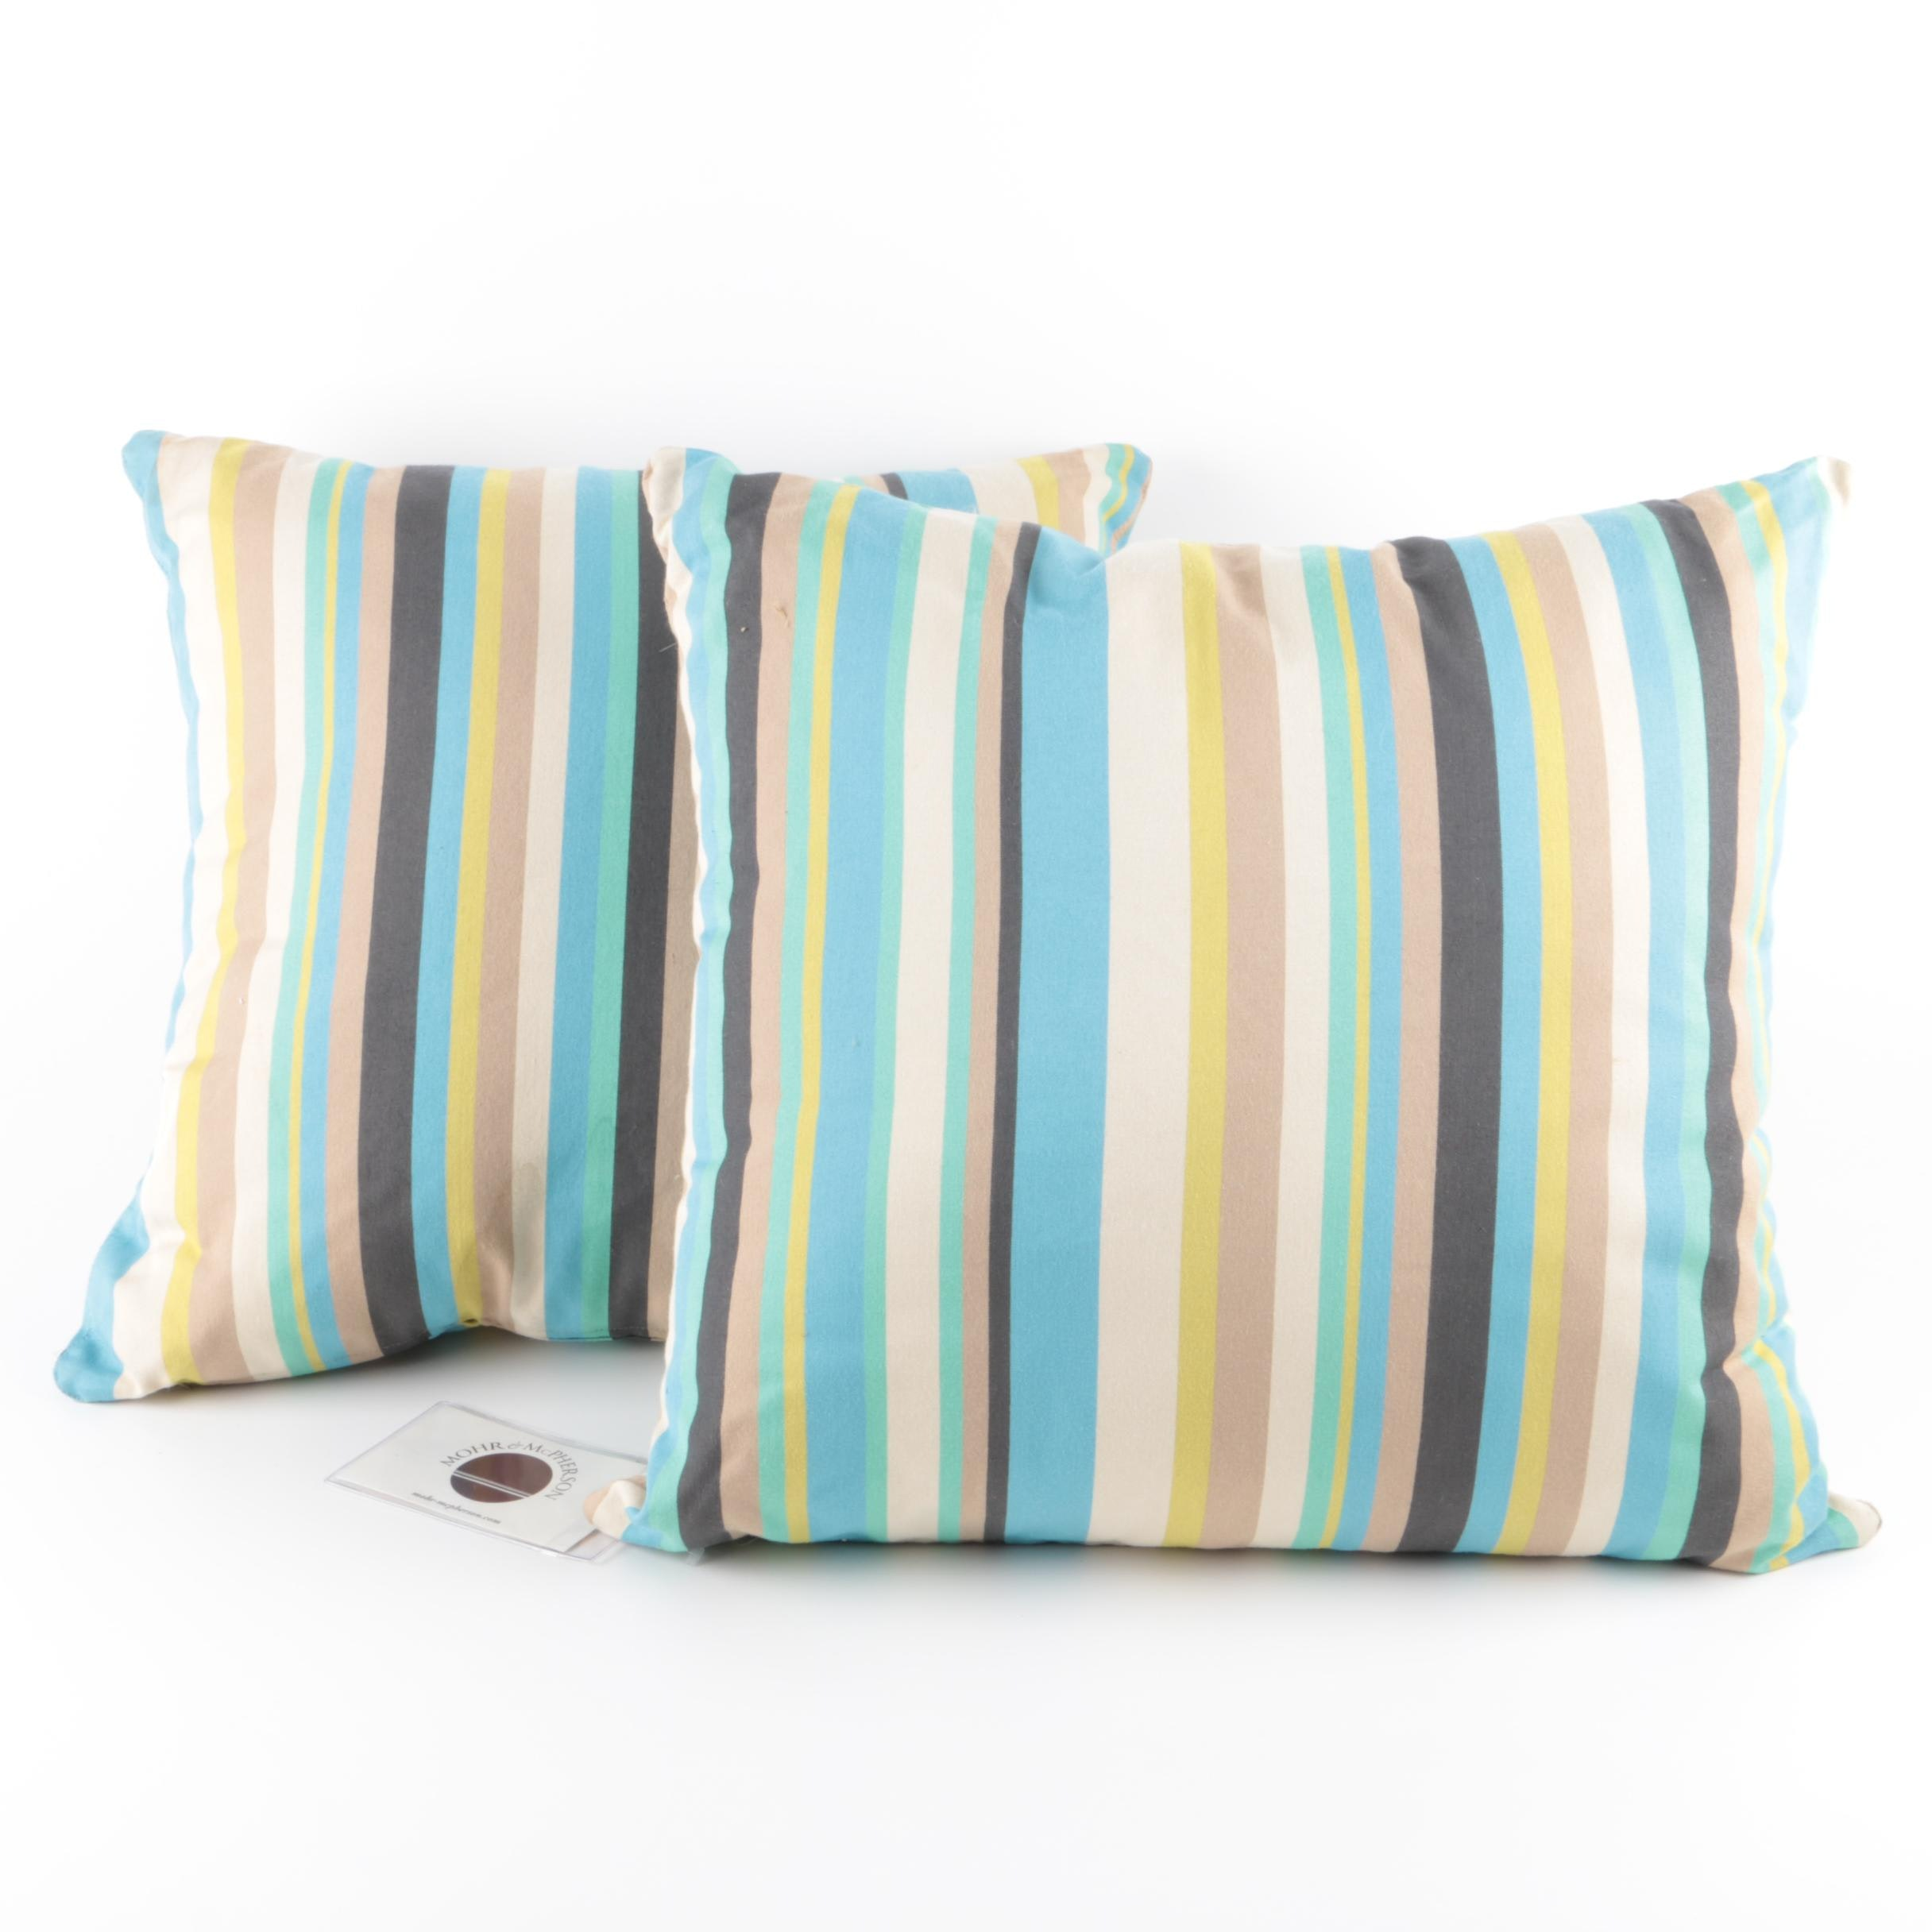 Two Striped Throw Pillows